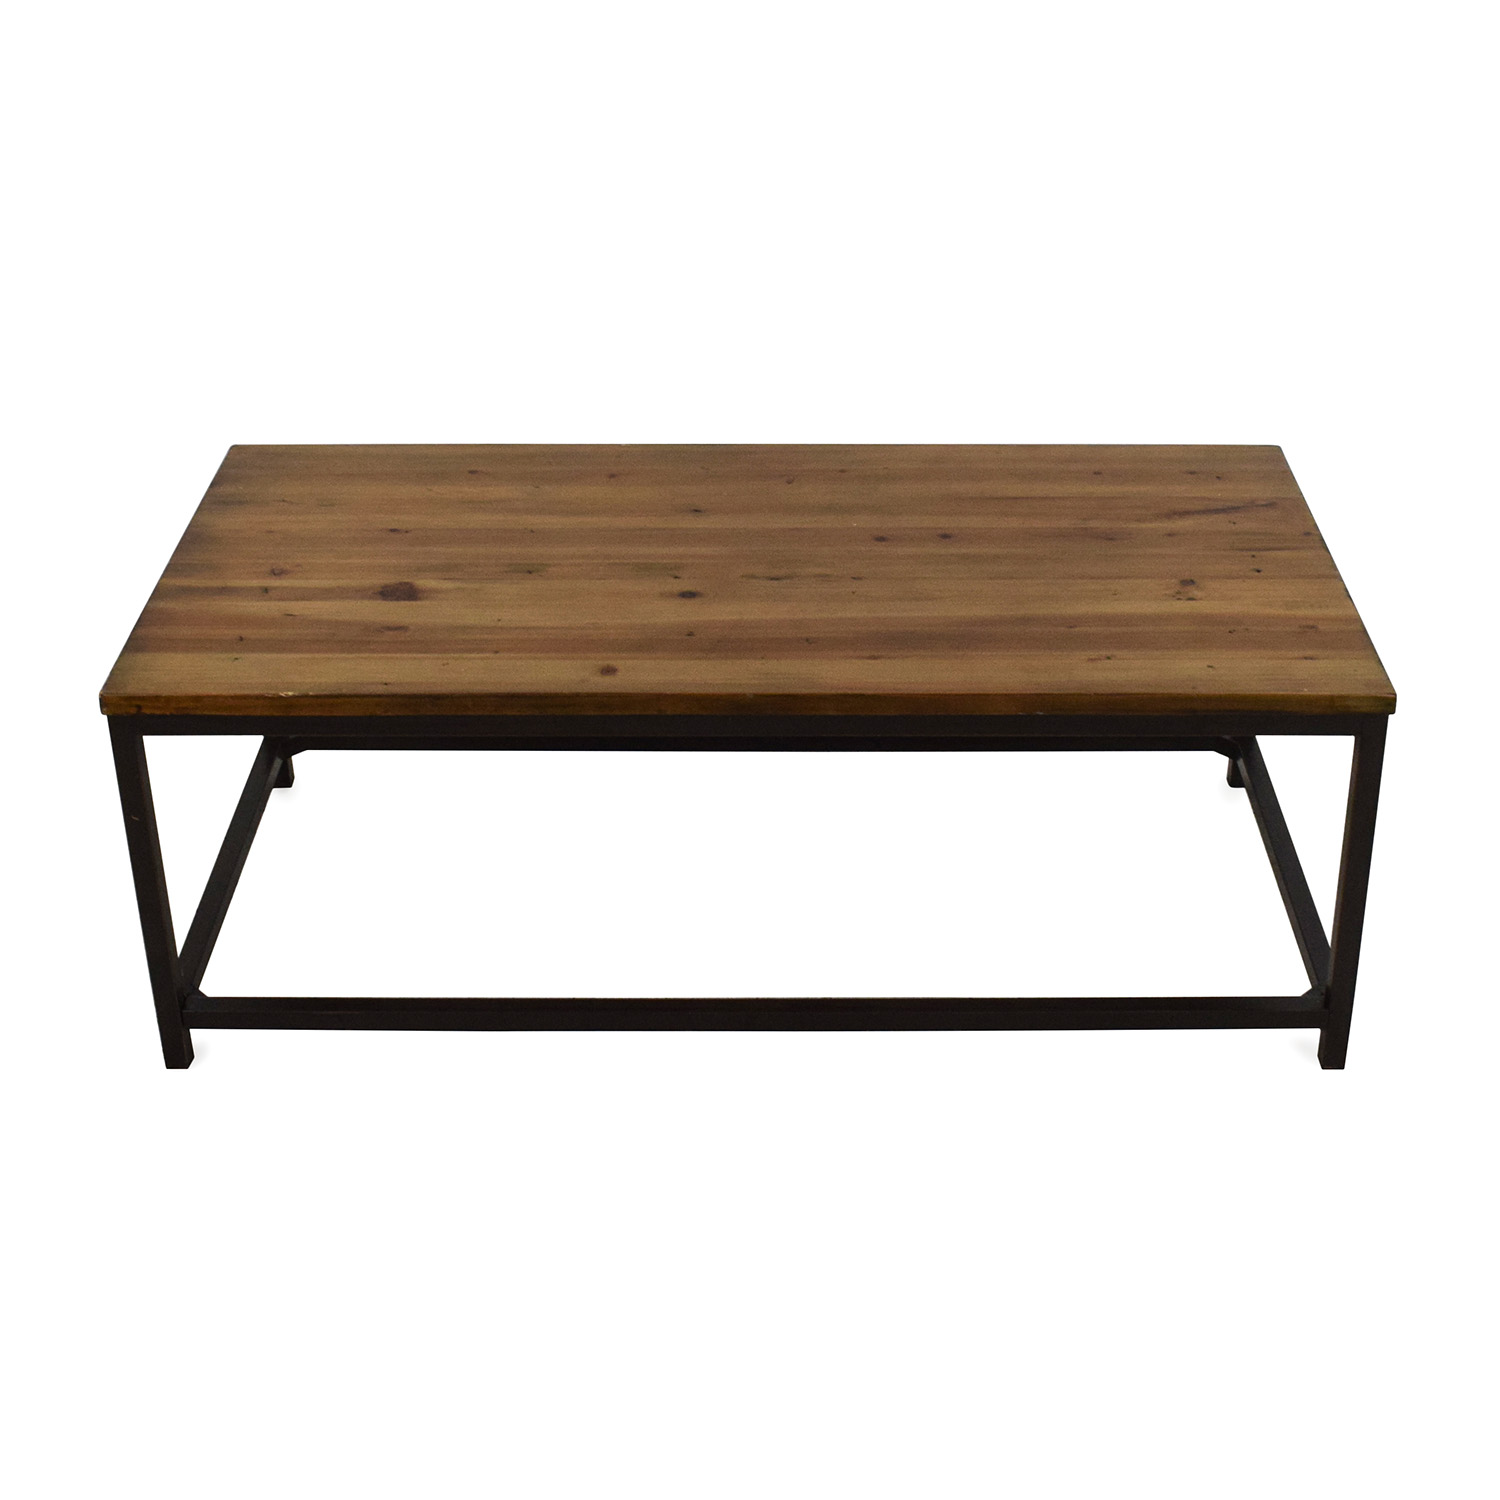 Pottery Barn Wood Coffee Table sale